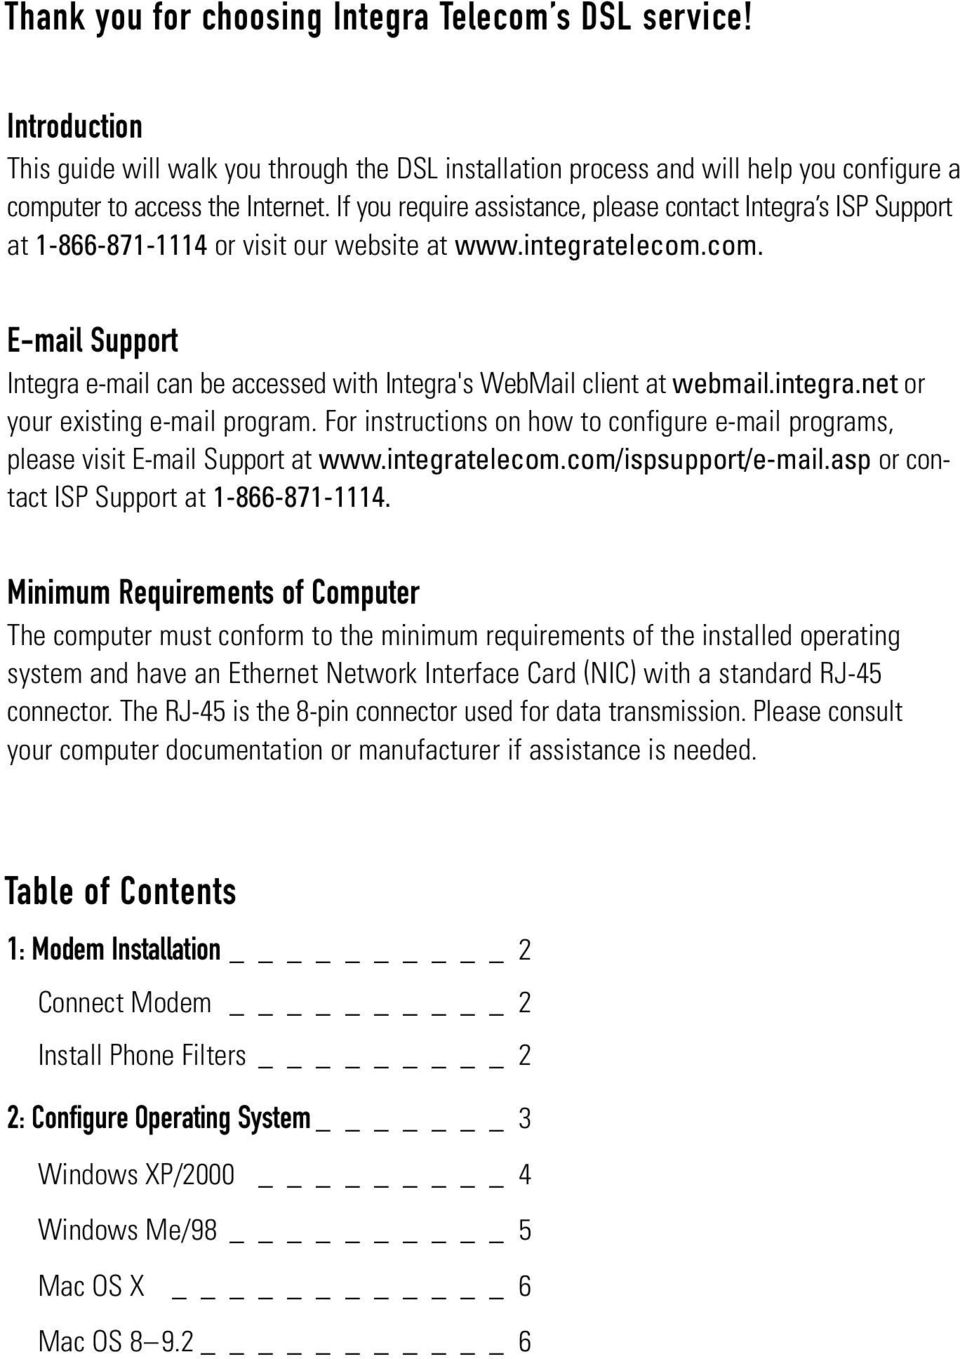 com. E-mail Support Integra e-mail can be accessed with Integra's WebMail client at webmail.integra.net or your existing e-mail program.